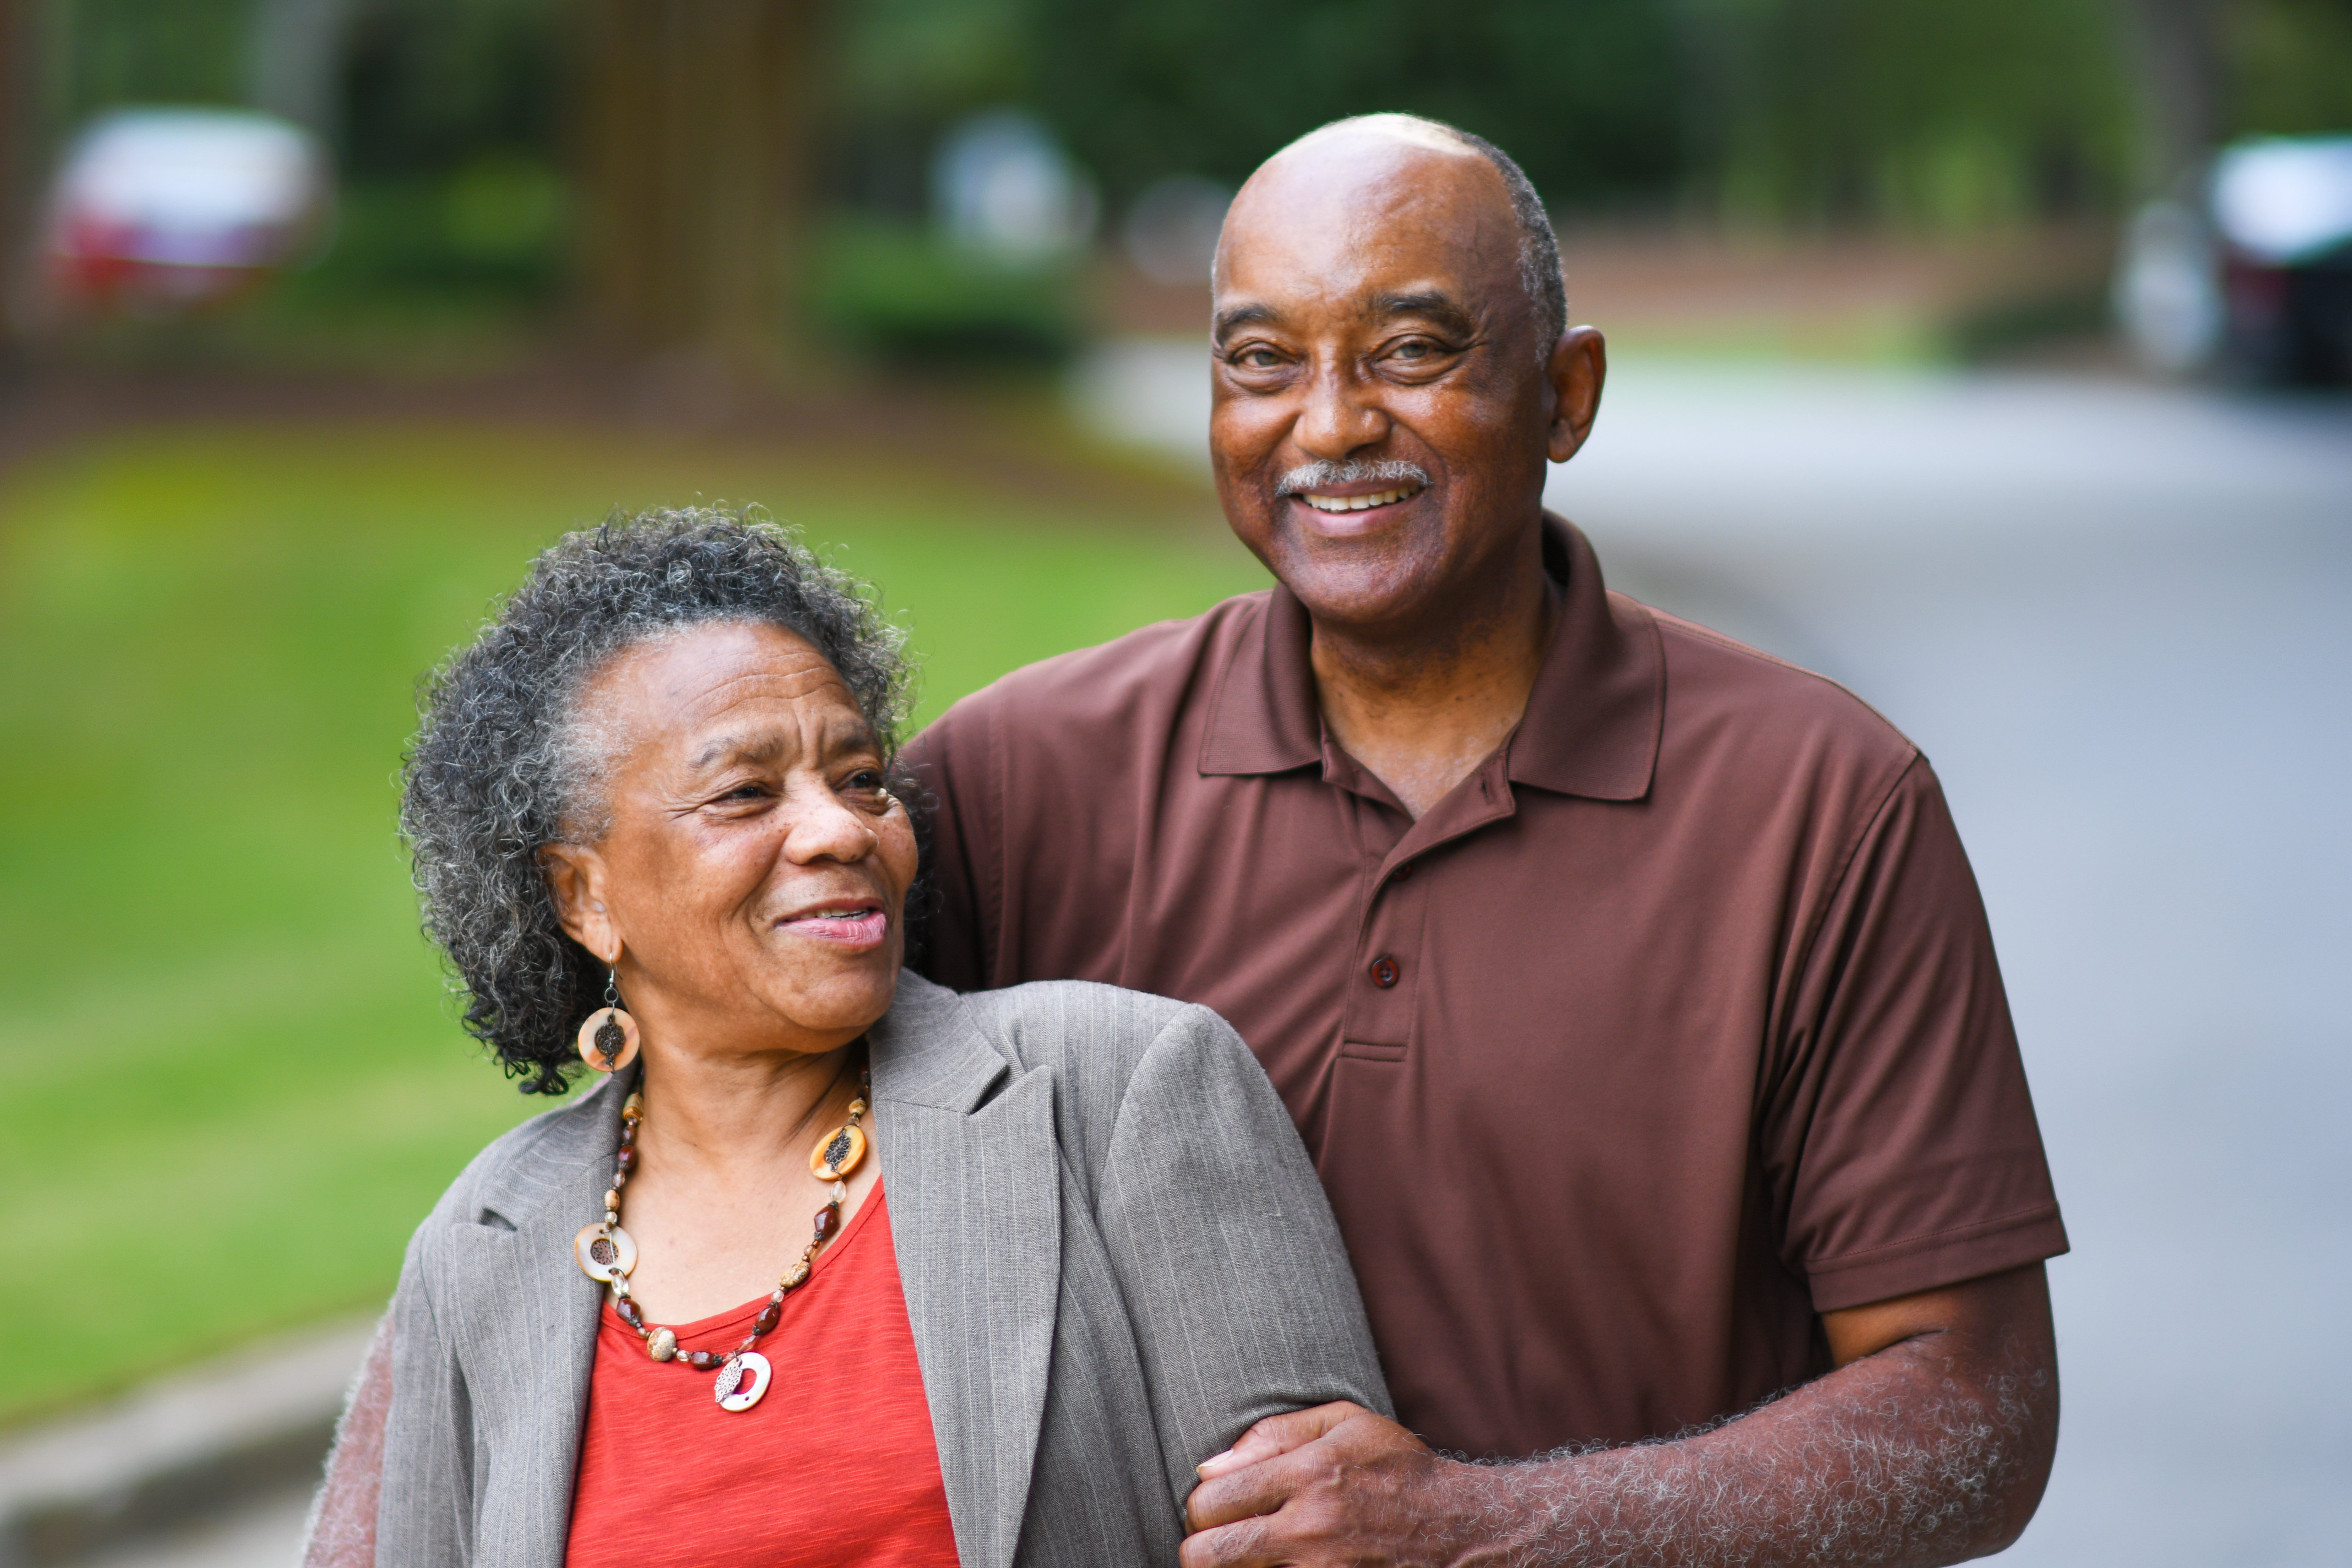 An elderly couple laughing | Photo: Shutterstock